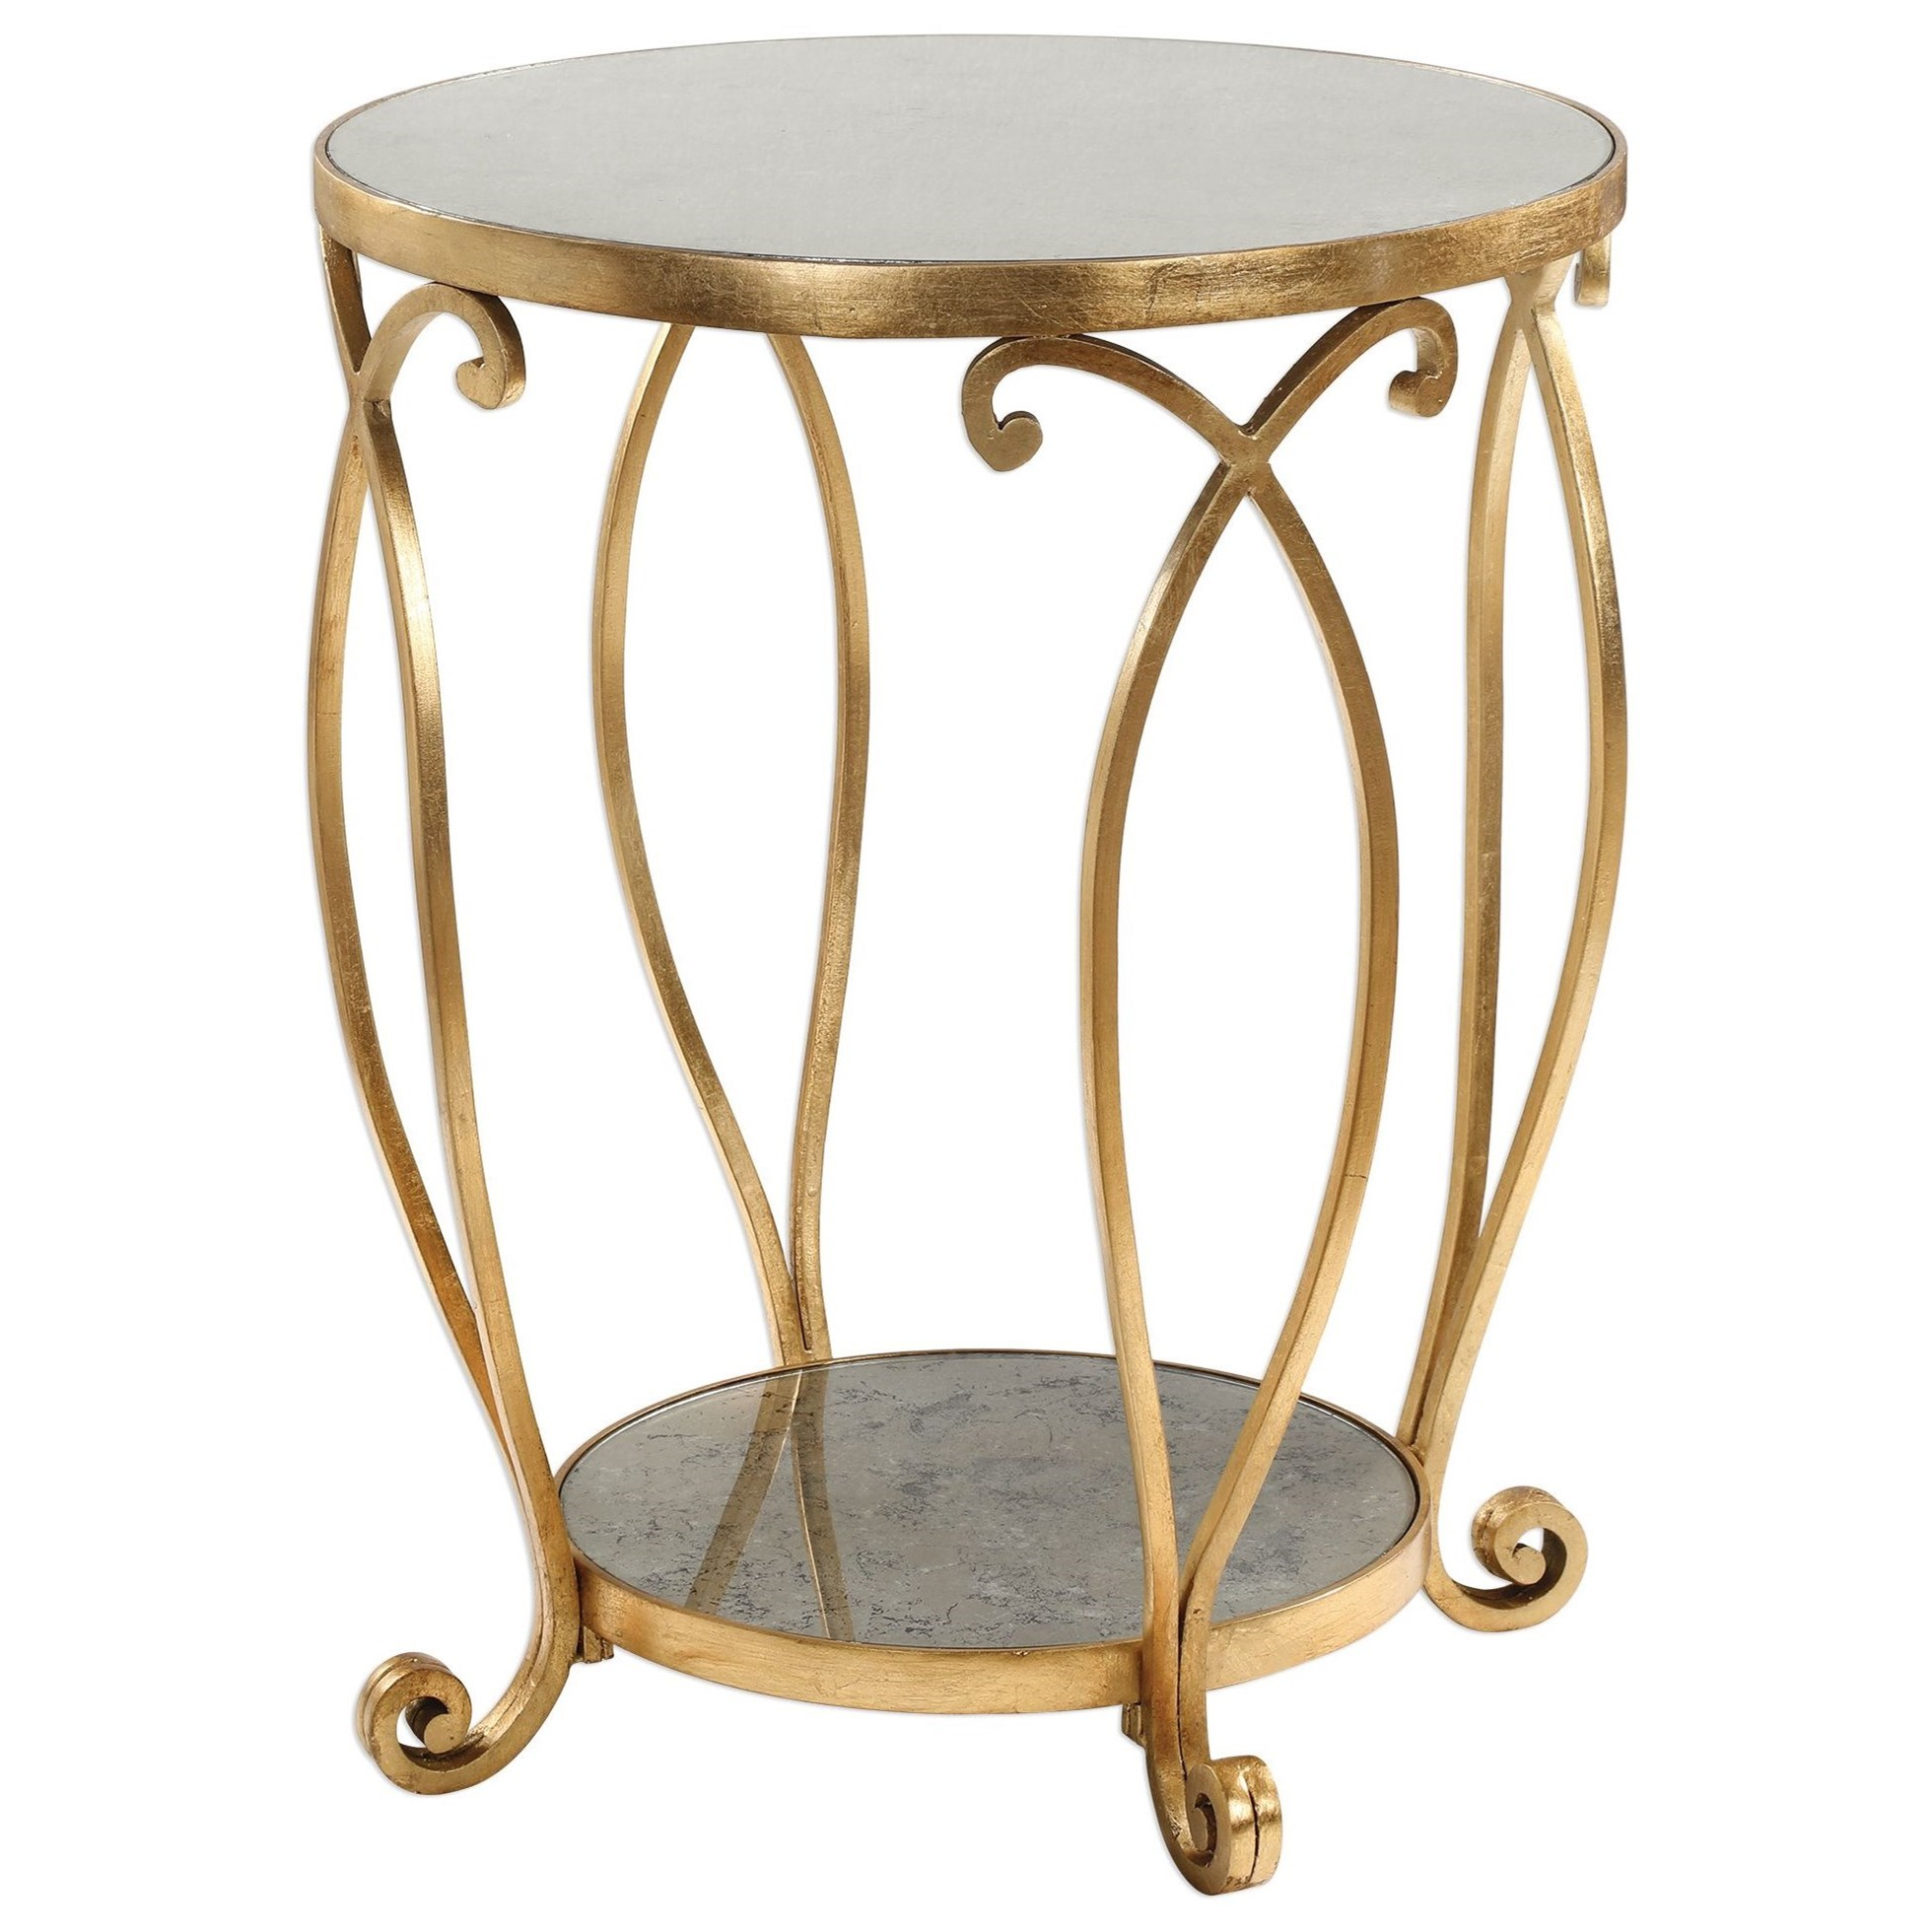 uttermost accent furniture martella round gold table reid products color dice red pottery barn lamps dining room and chairs wide nightstand black umbrella base small wood end